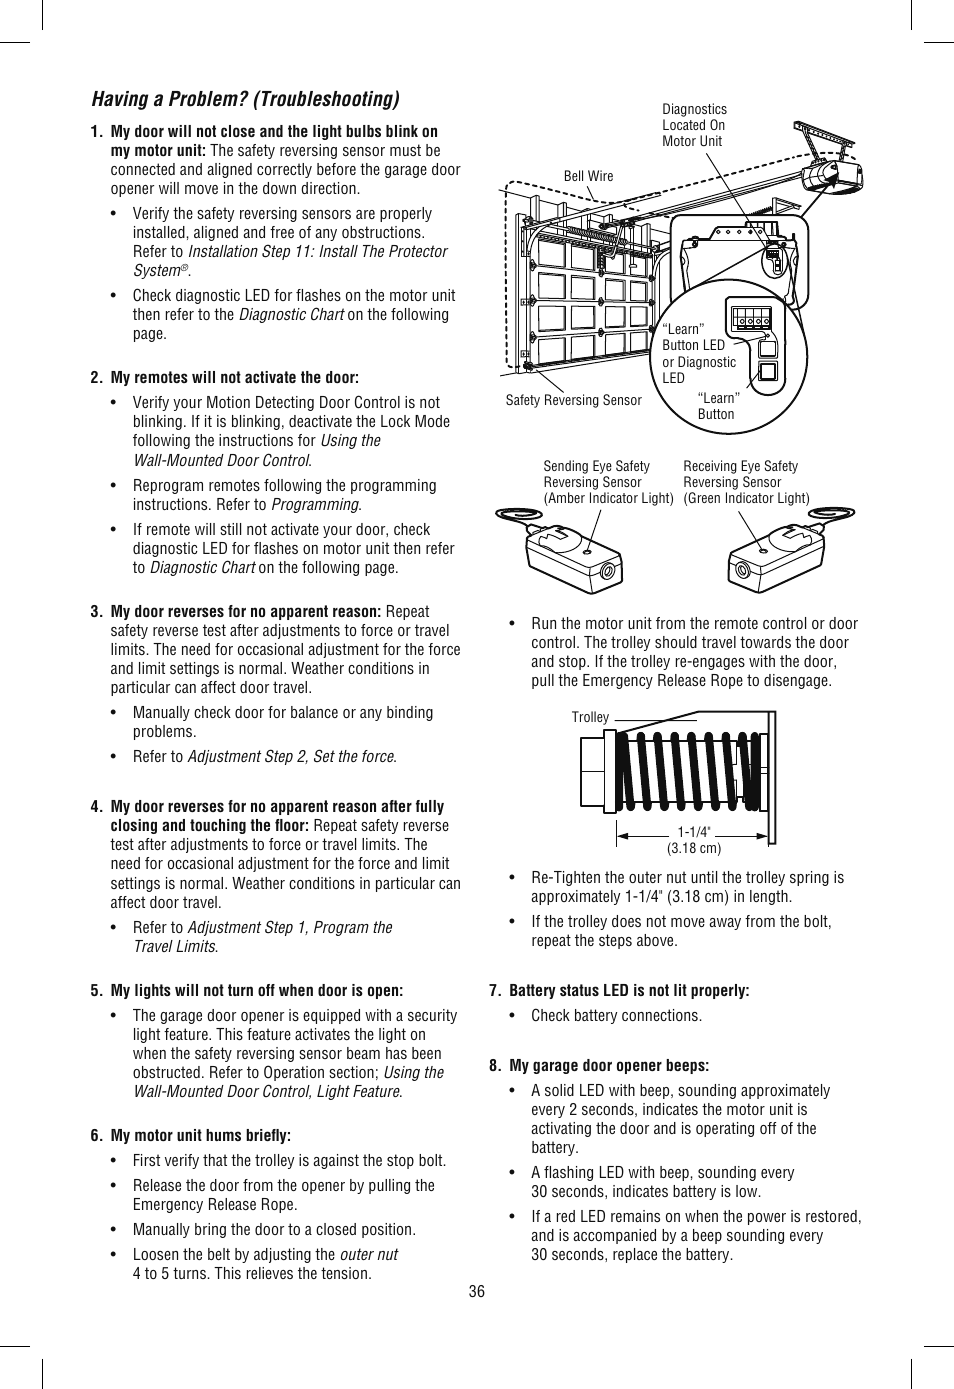 (troubleshooting) | chamberlain wd962kld user manual | page 36 / 44